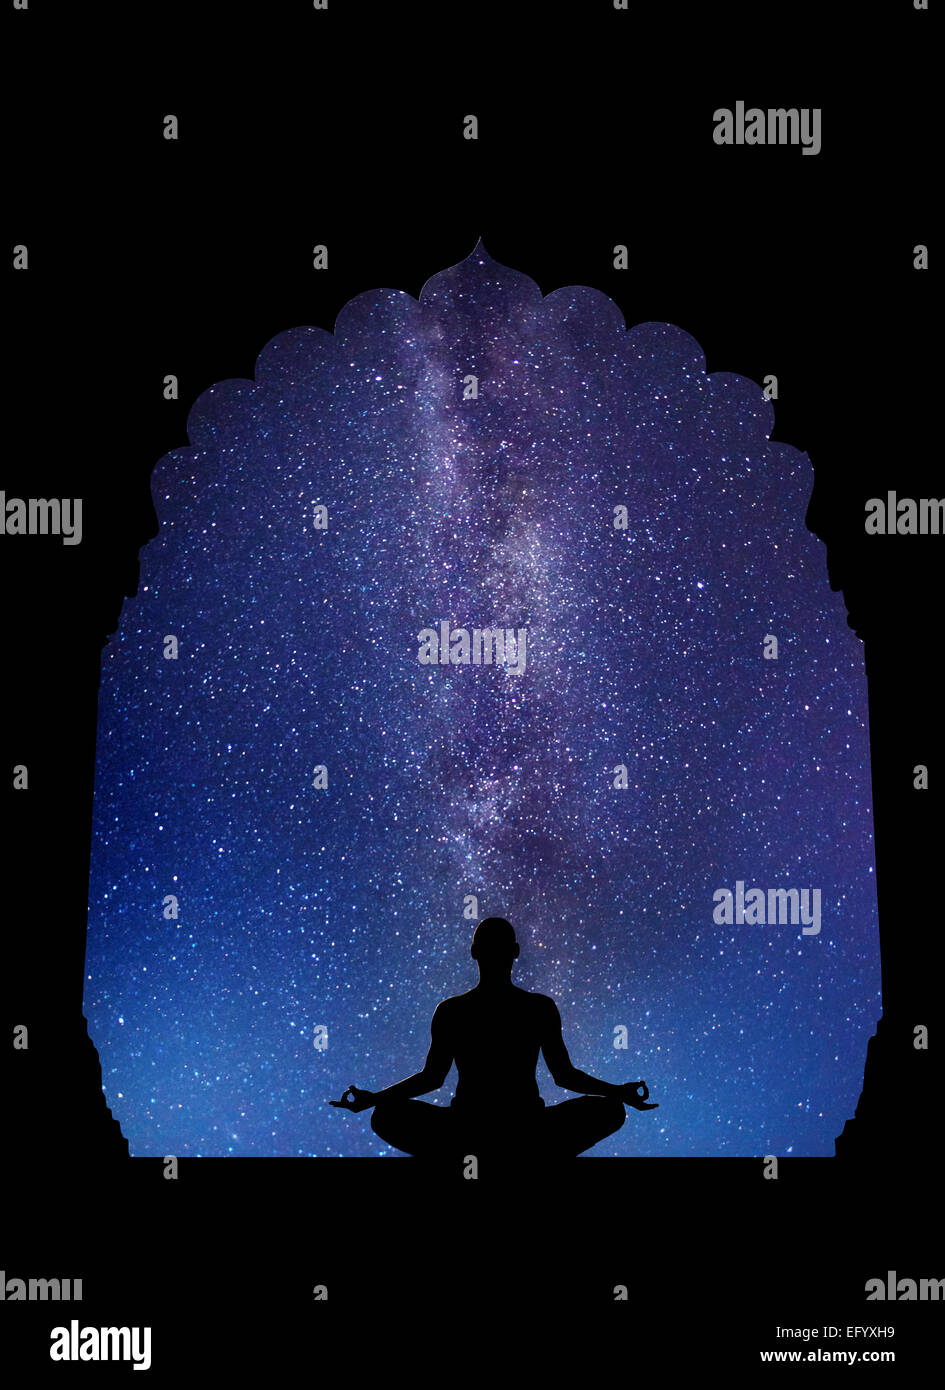 Meditation in old temple at night sky with Milky Way and stars - Stock Image